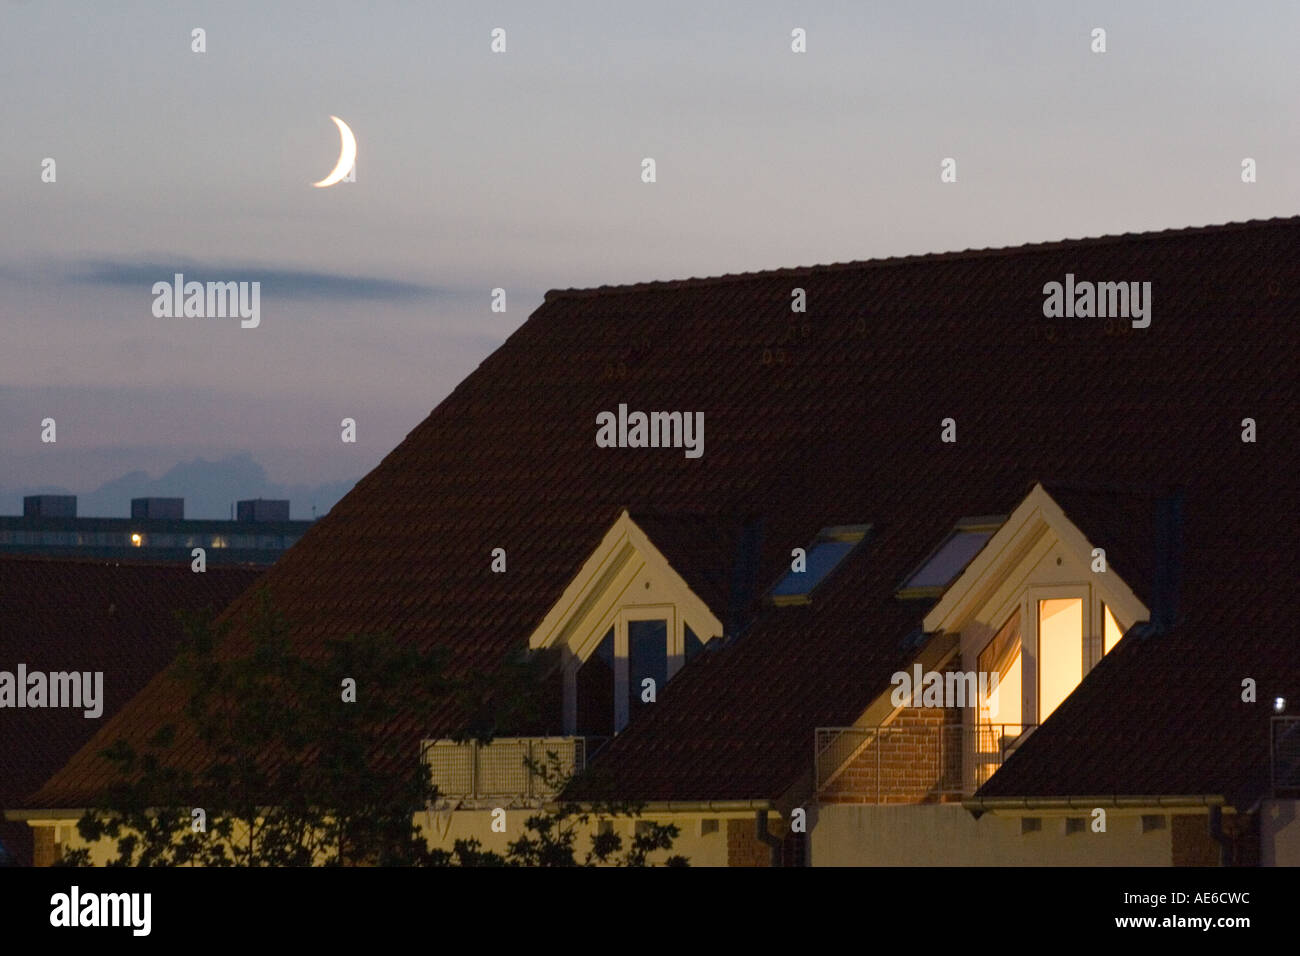 Rooftop apartment in the night with moon - Stock Image